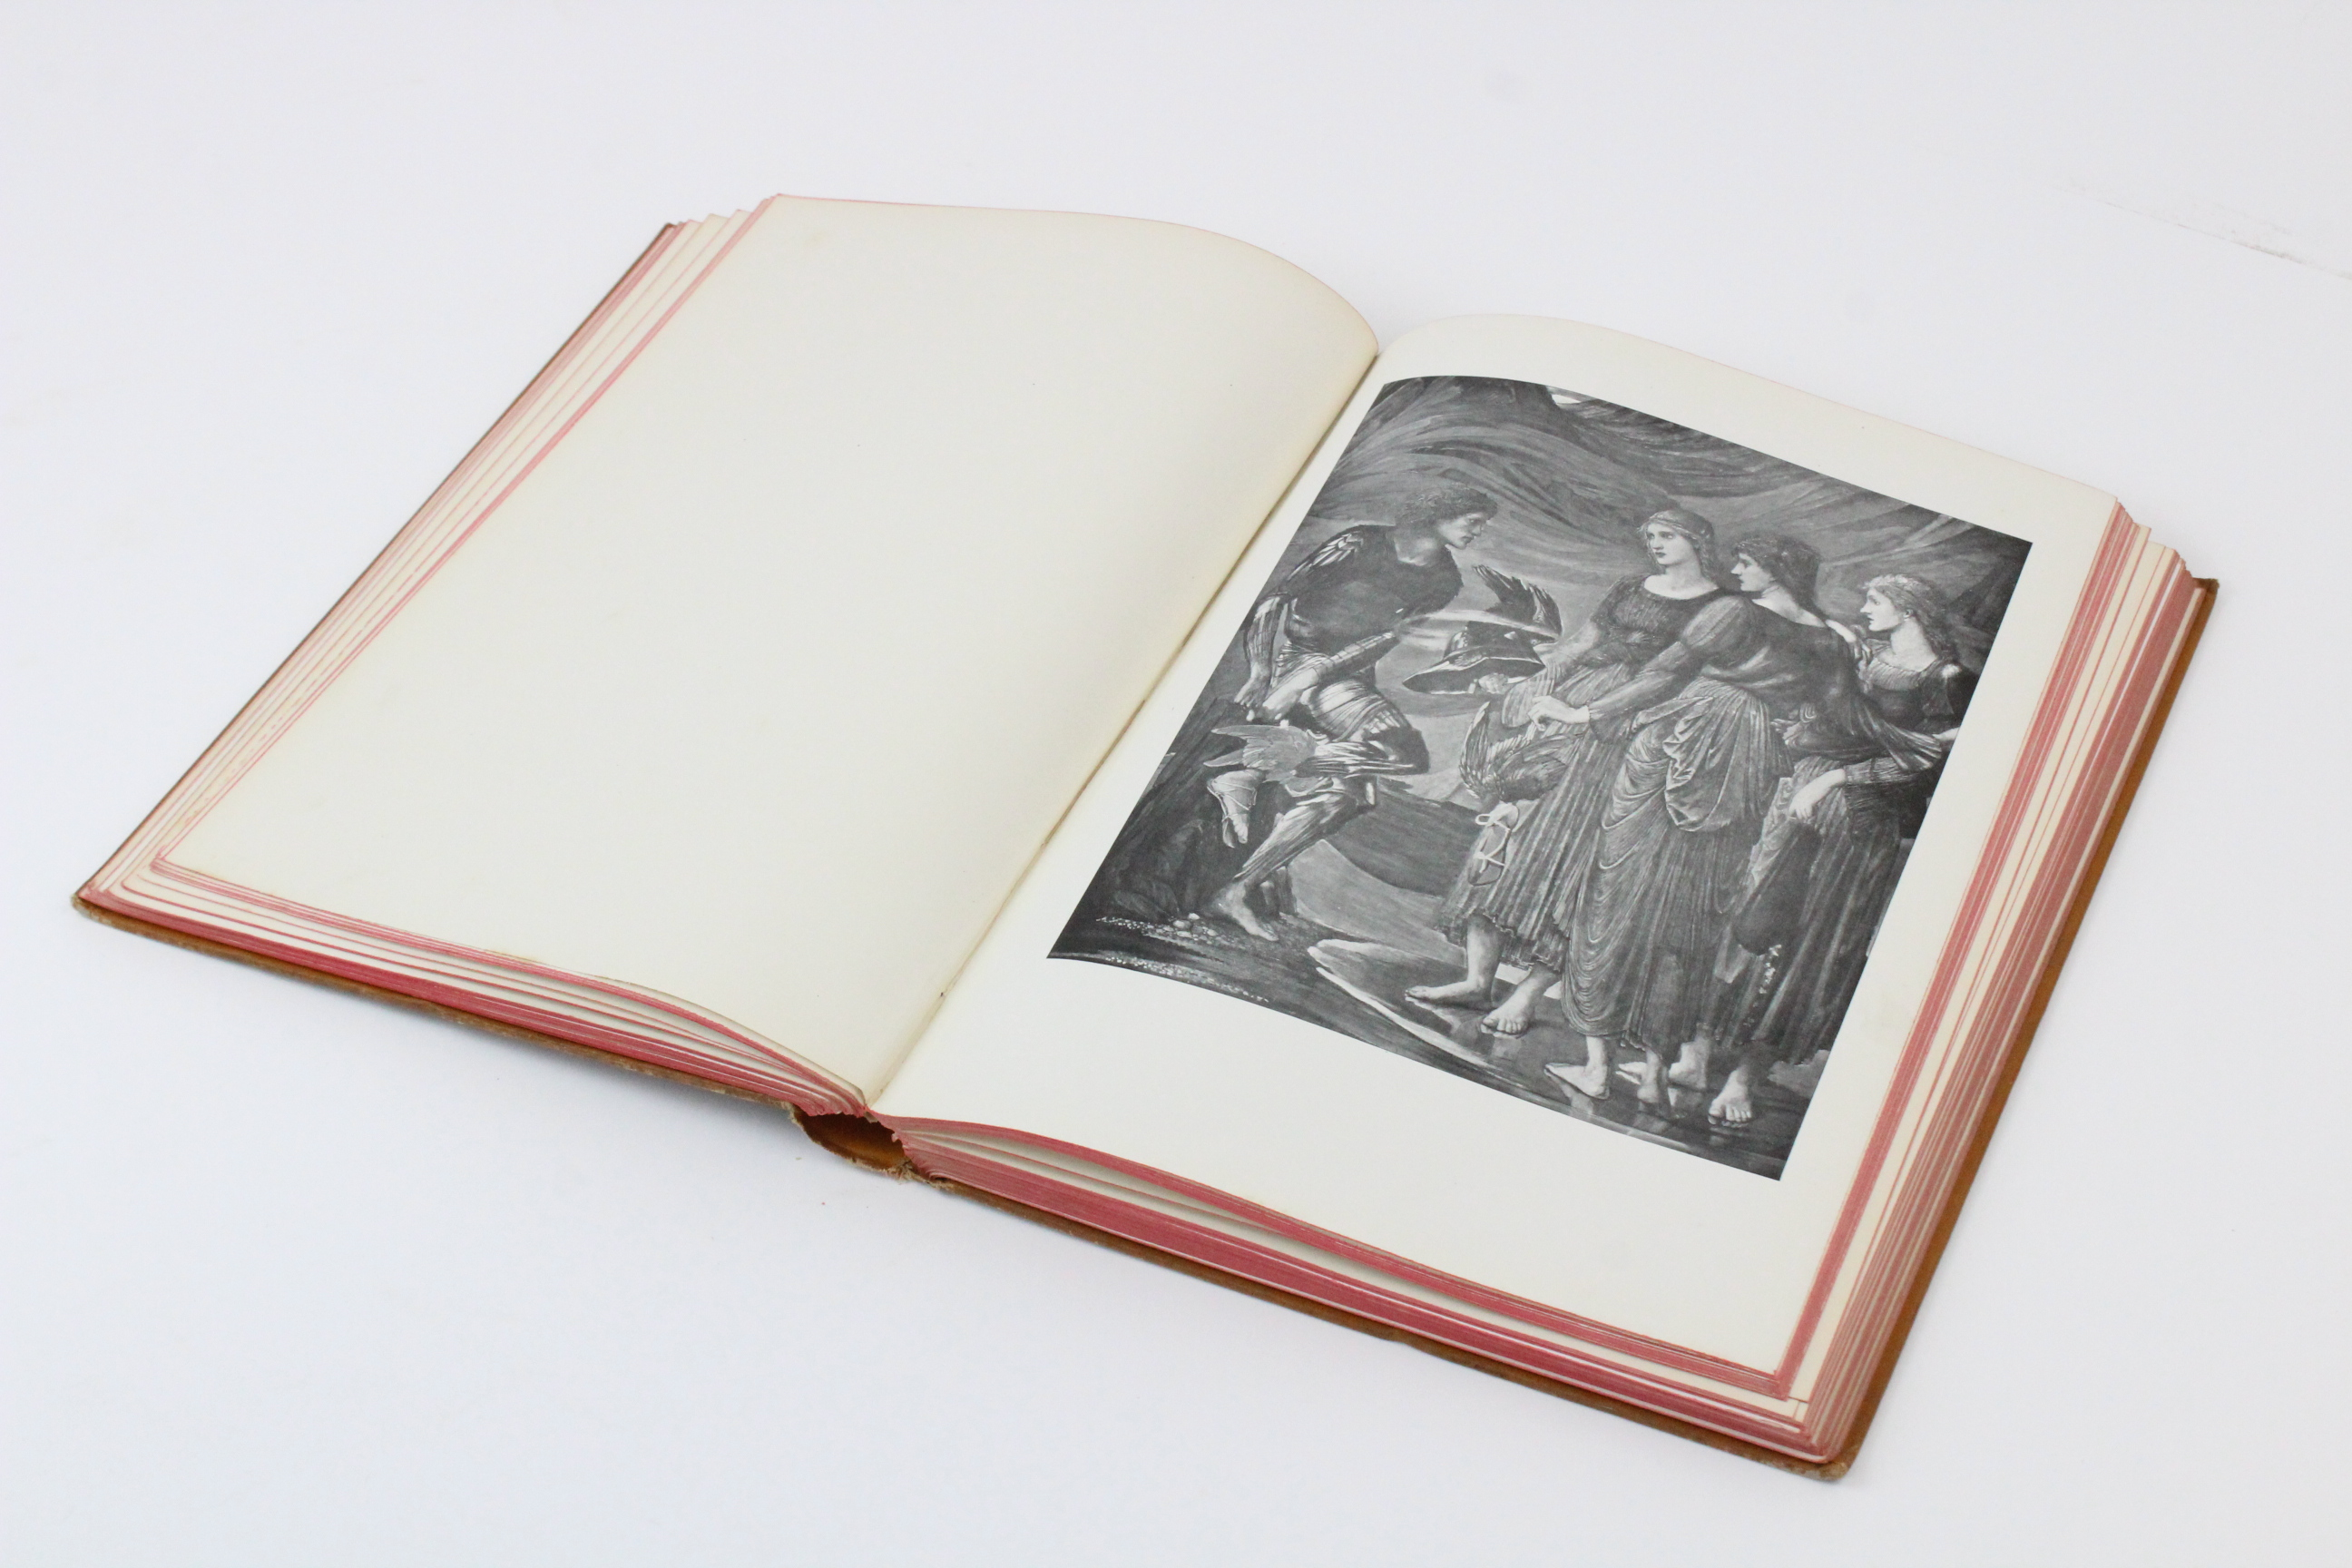 Hazelwood (C) et al, THE PAGEANT, 1897 edition, illustrated red boards, illustrated endpapers, - Image 7 of 16